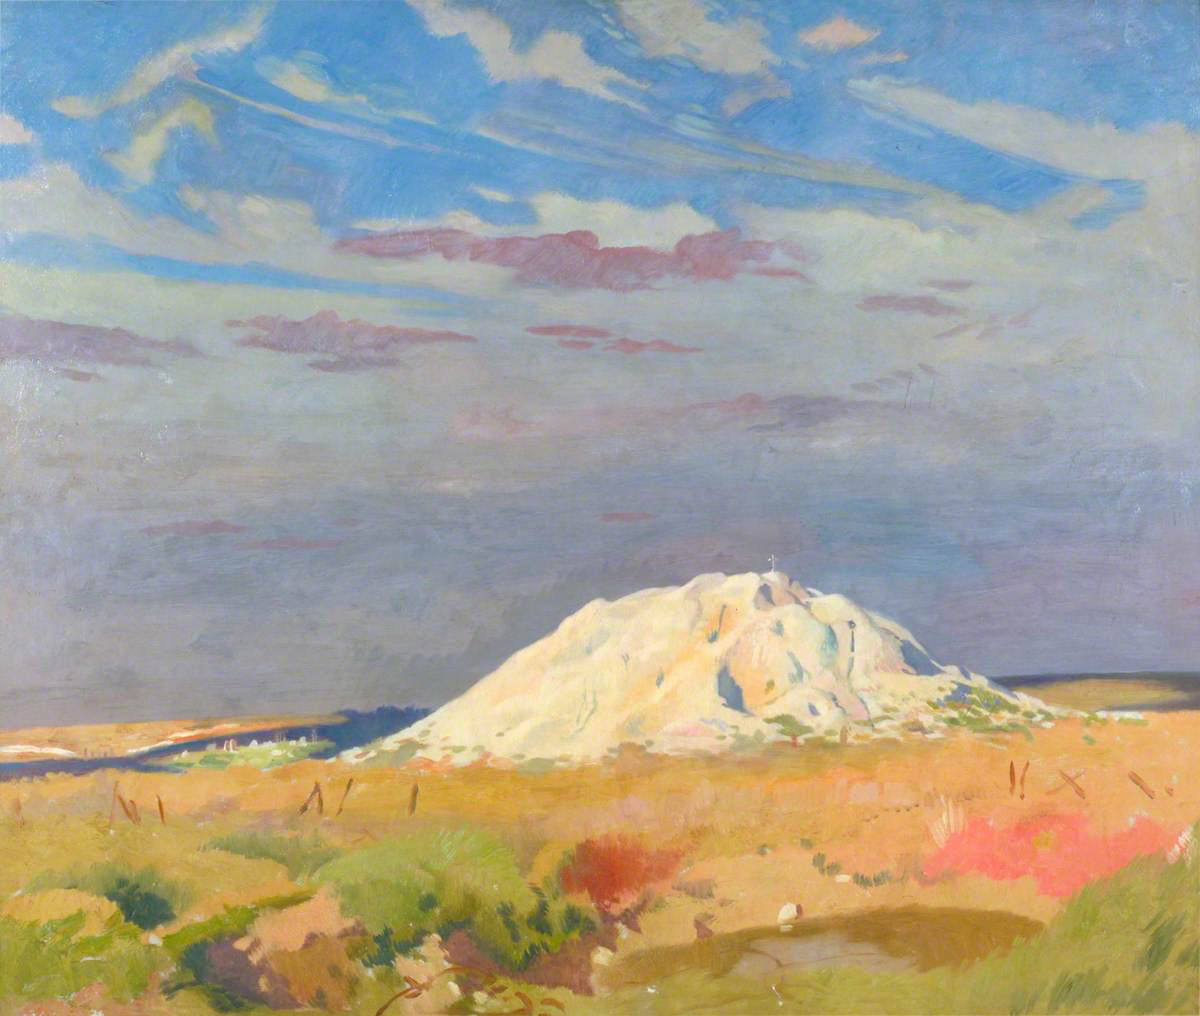 Orpen, William, 1878-1931; The Butte de Warlencourt